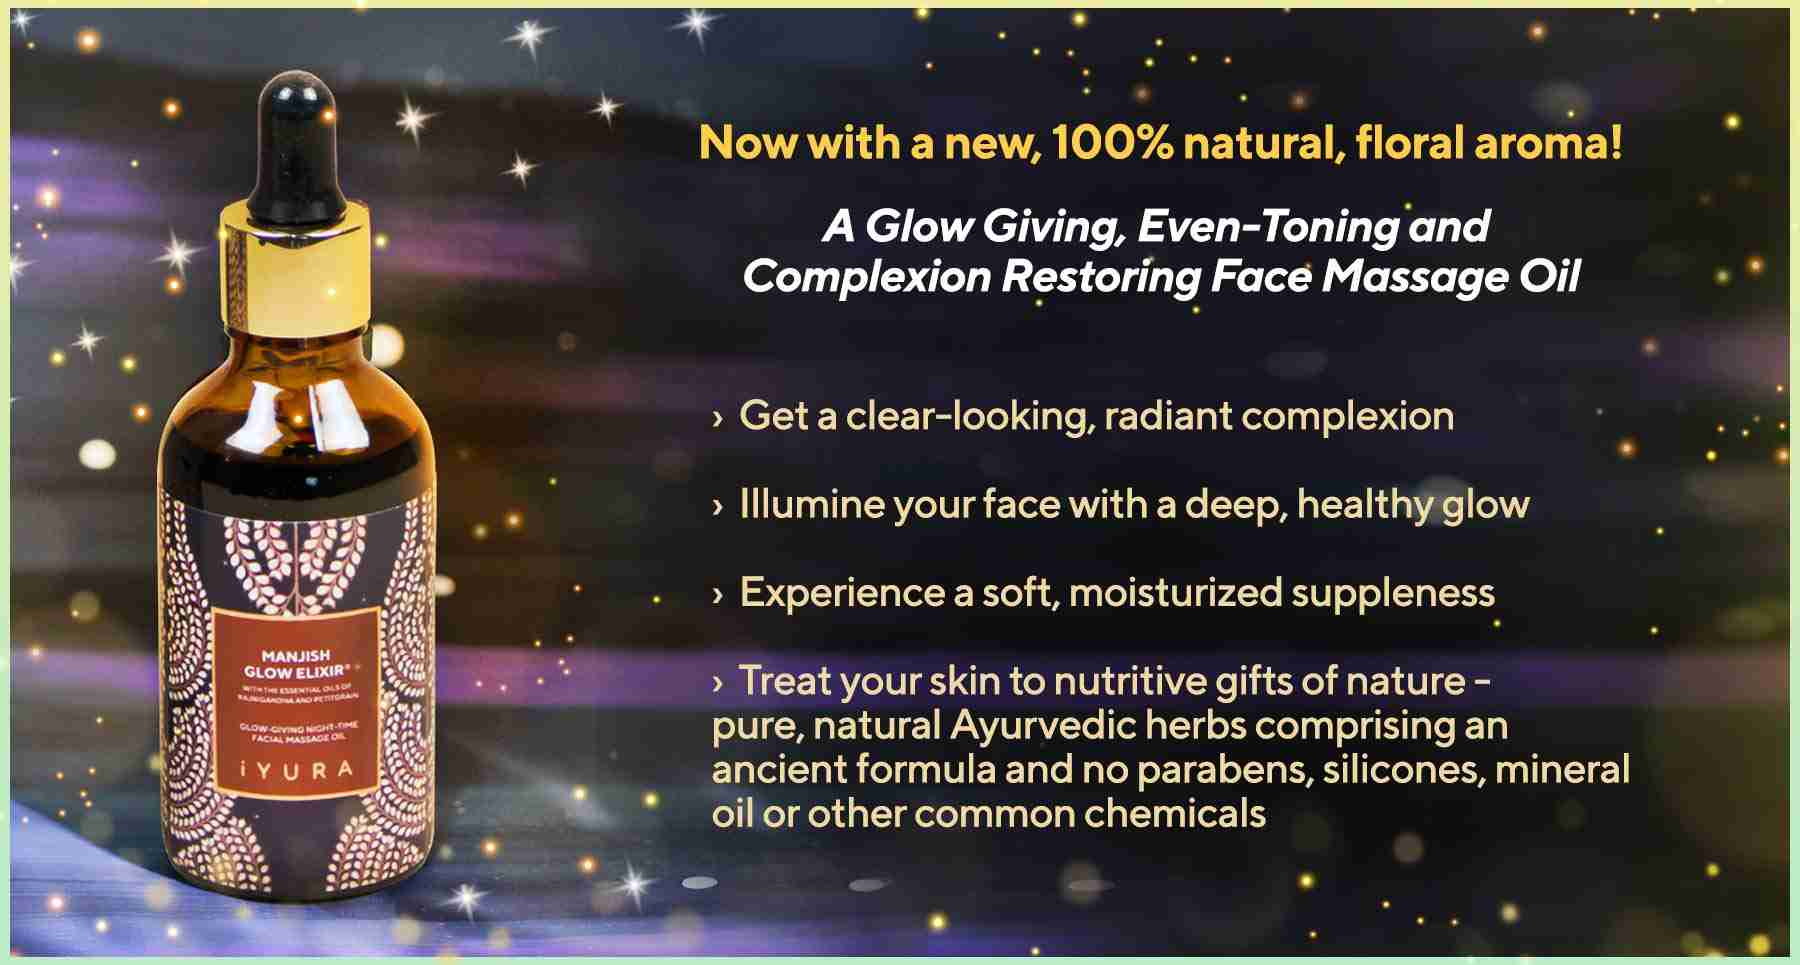 Manjish Glow Elixir's bottle in its natural, glowing habitat - with 4 ways in which it brings out your best skin.